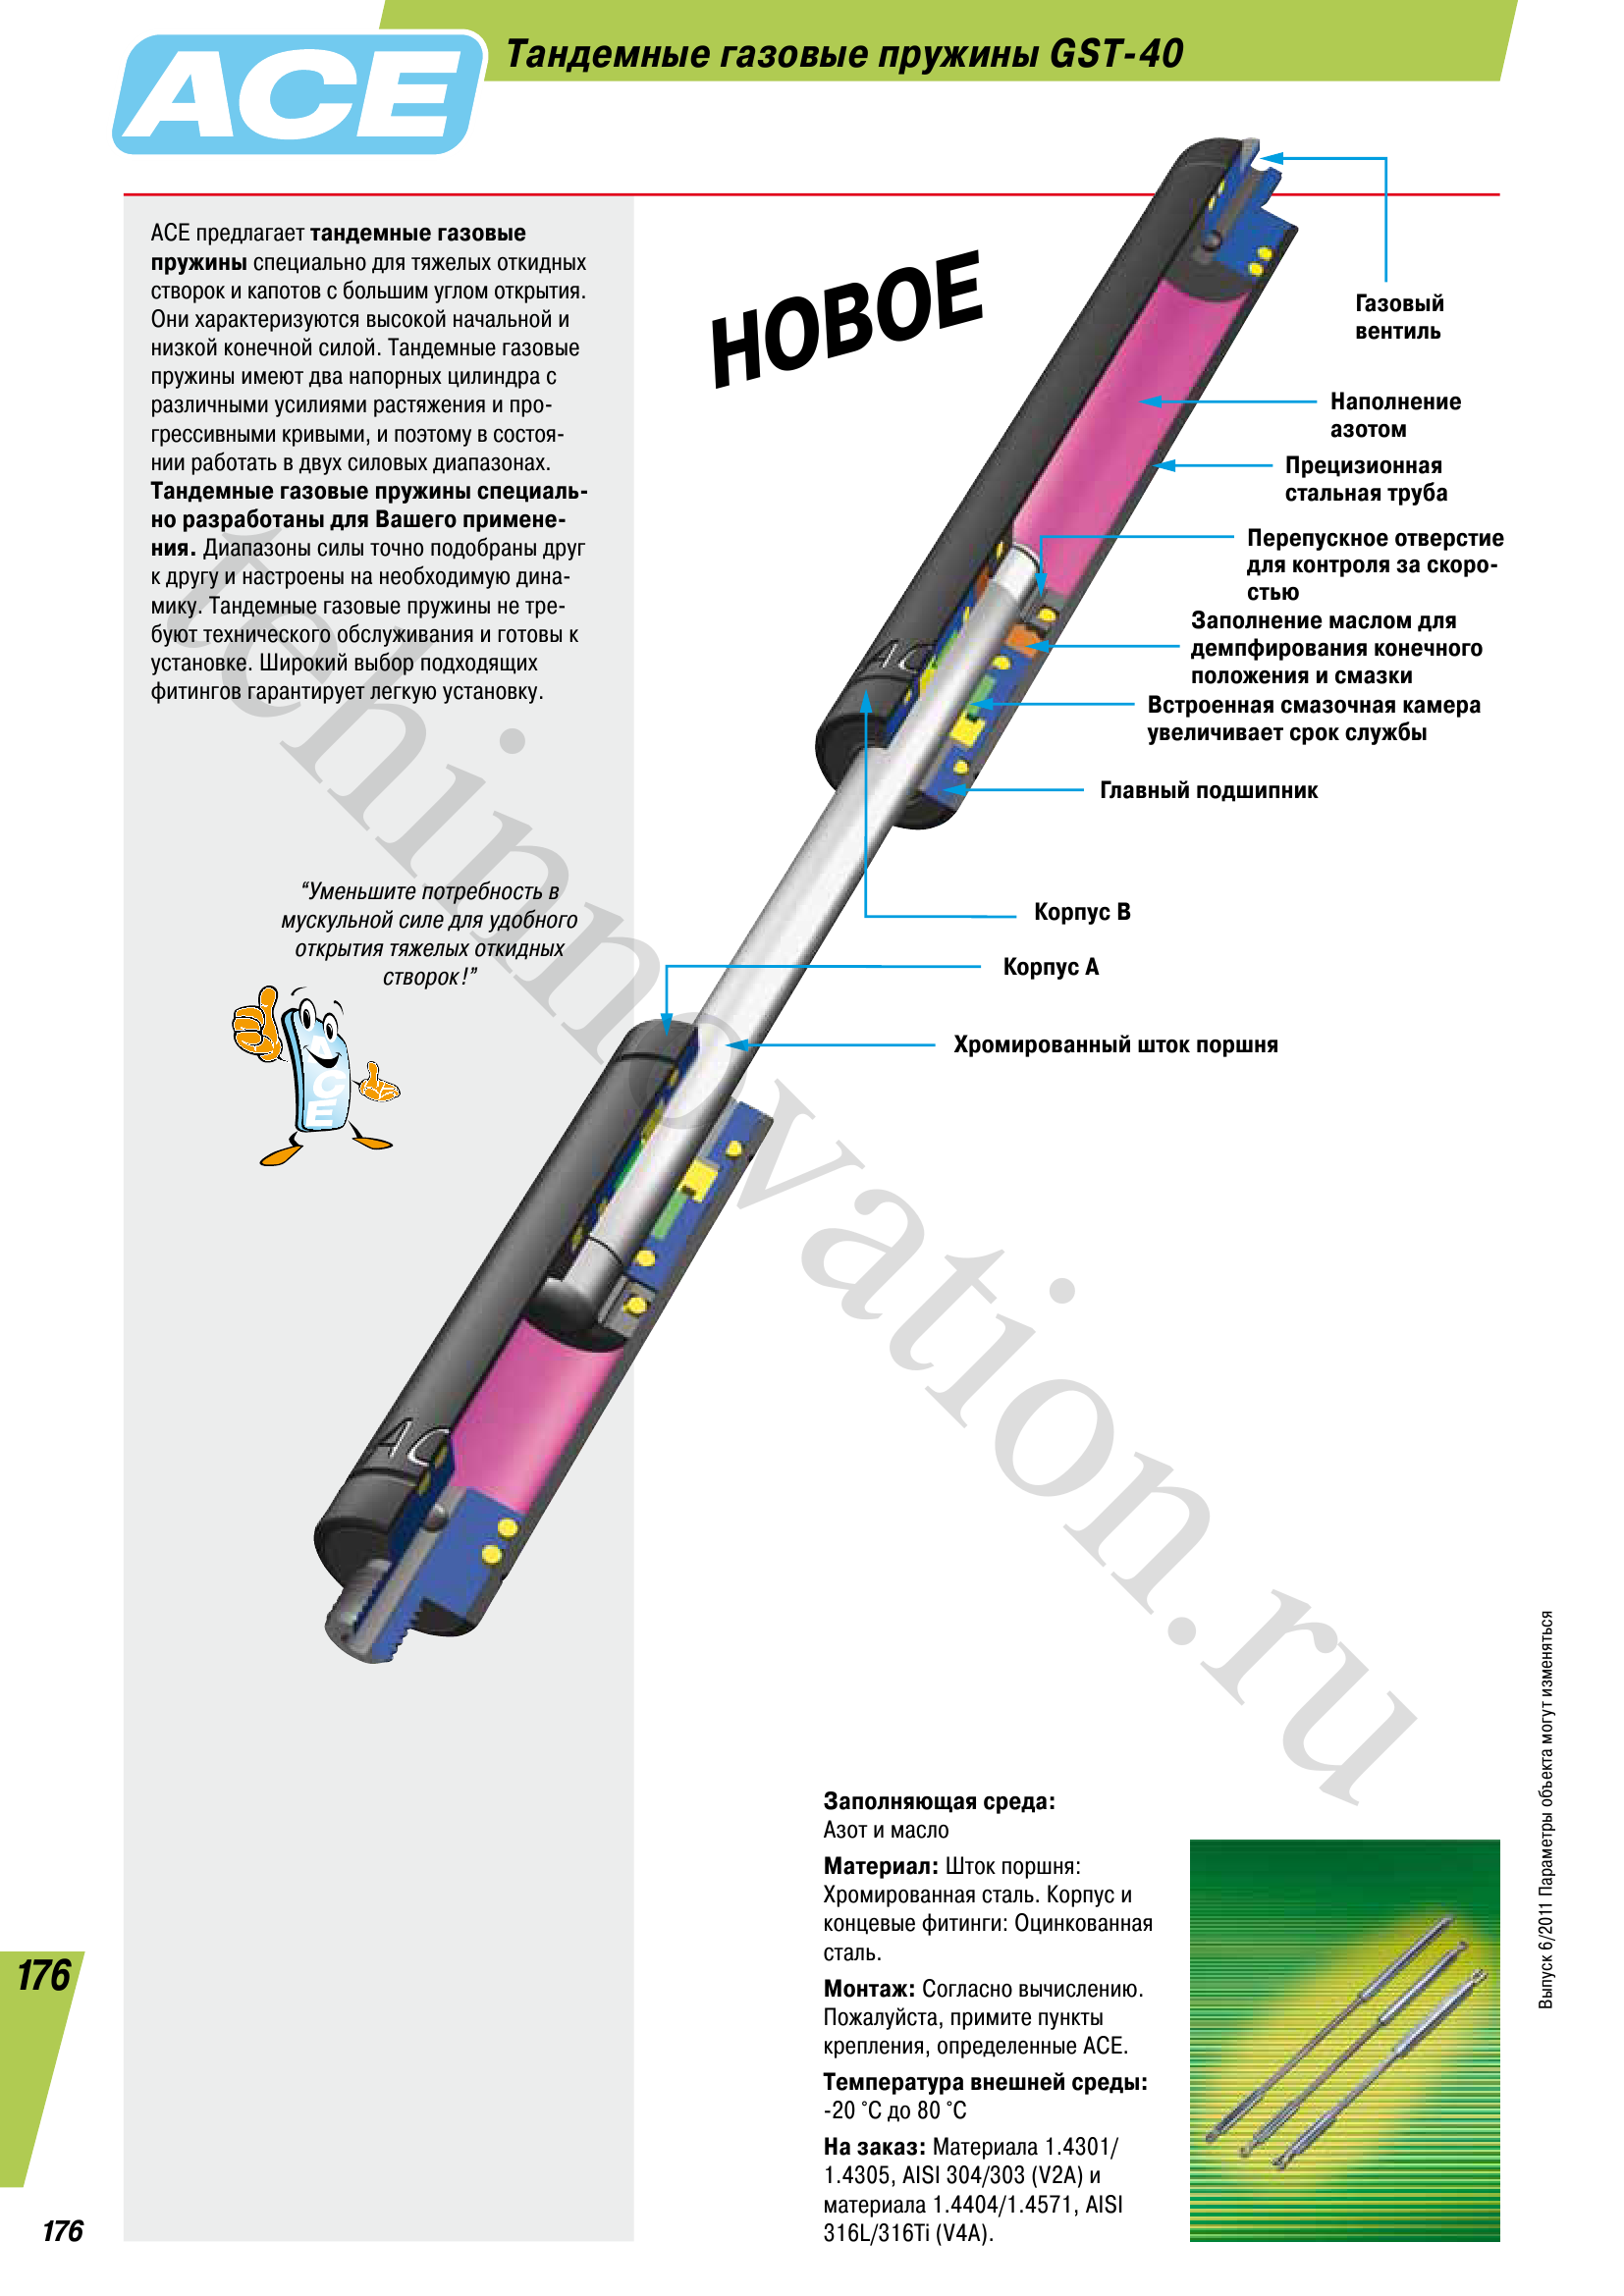 ACE-www.tehinnovation.ru_15.png